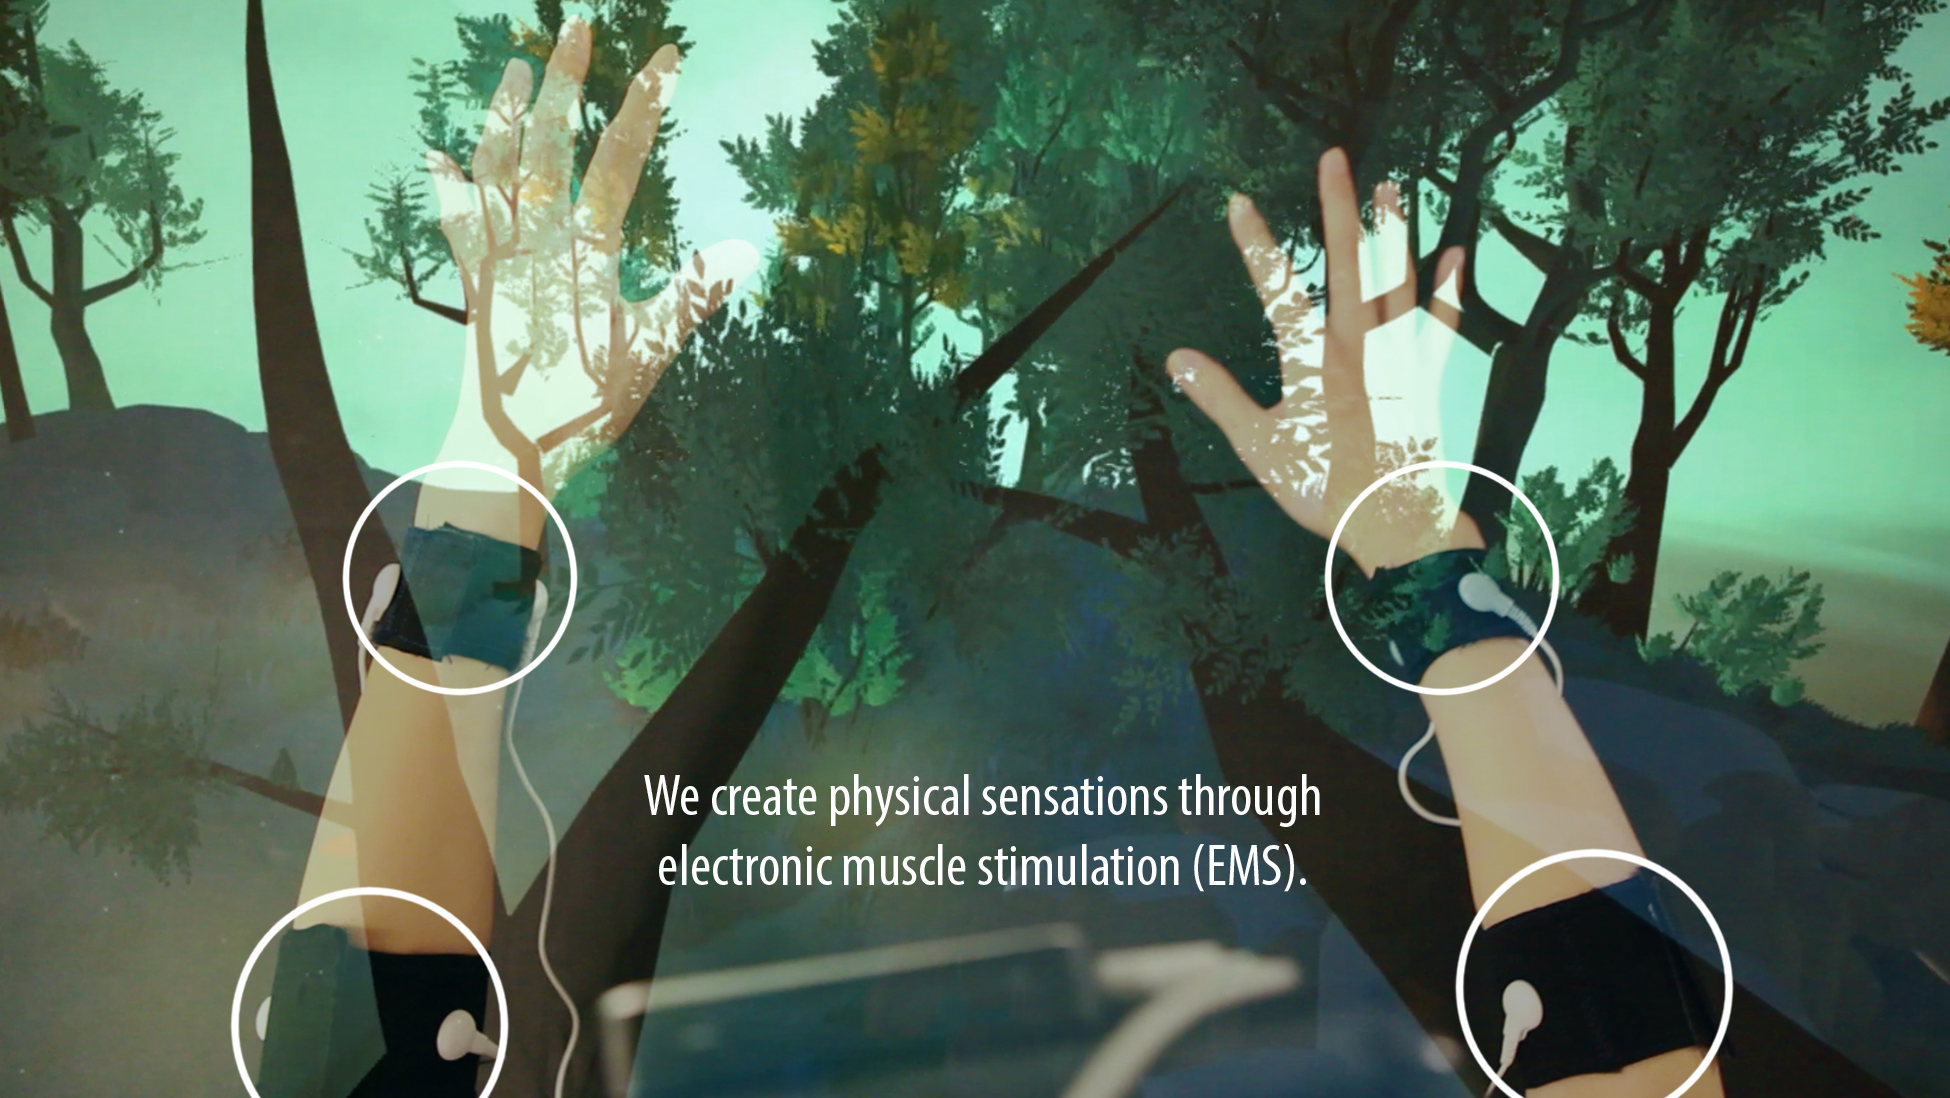 Tactile Feedback through Electrical Muscle Stimulation (EMS)